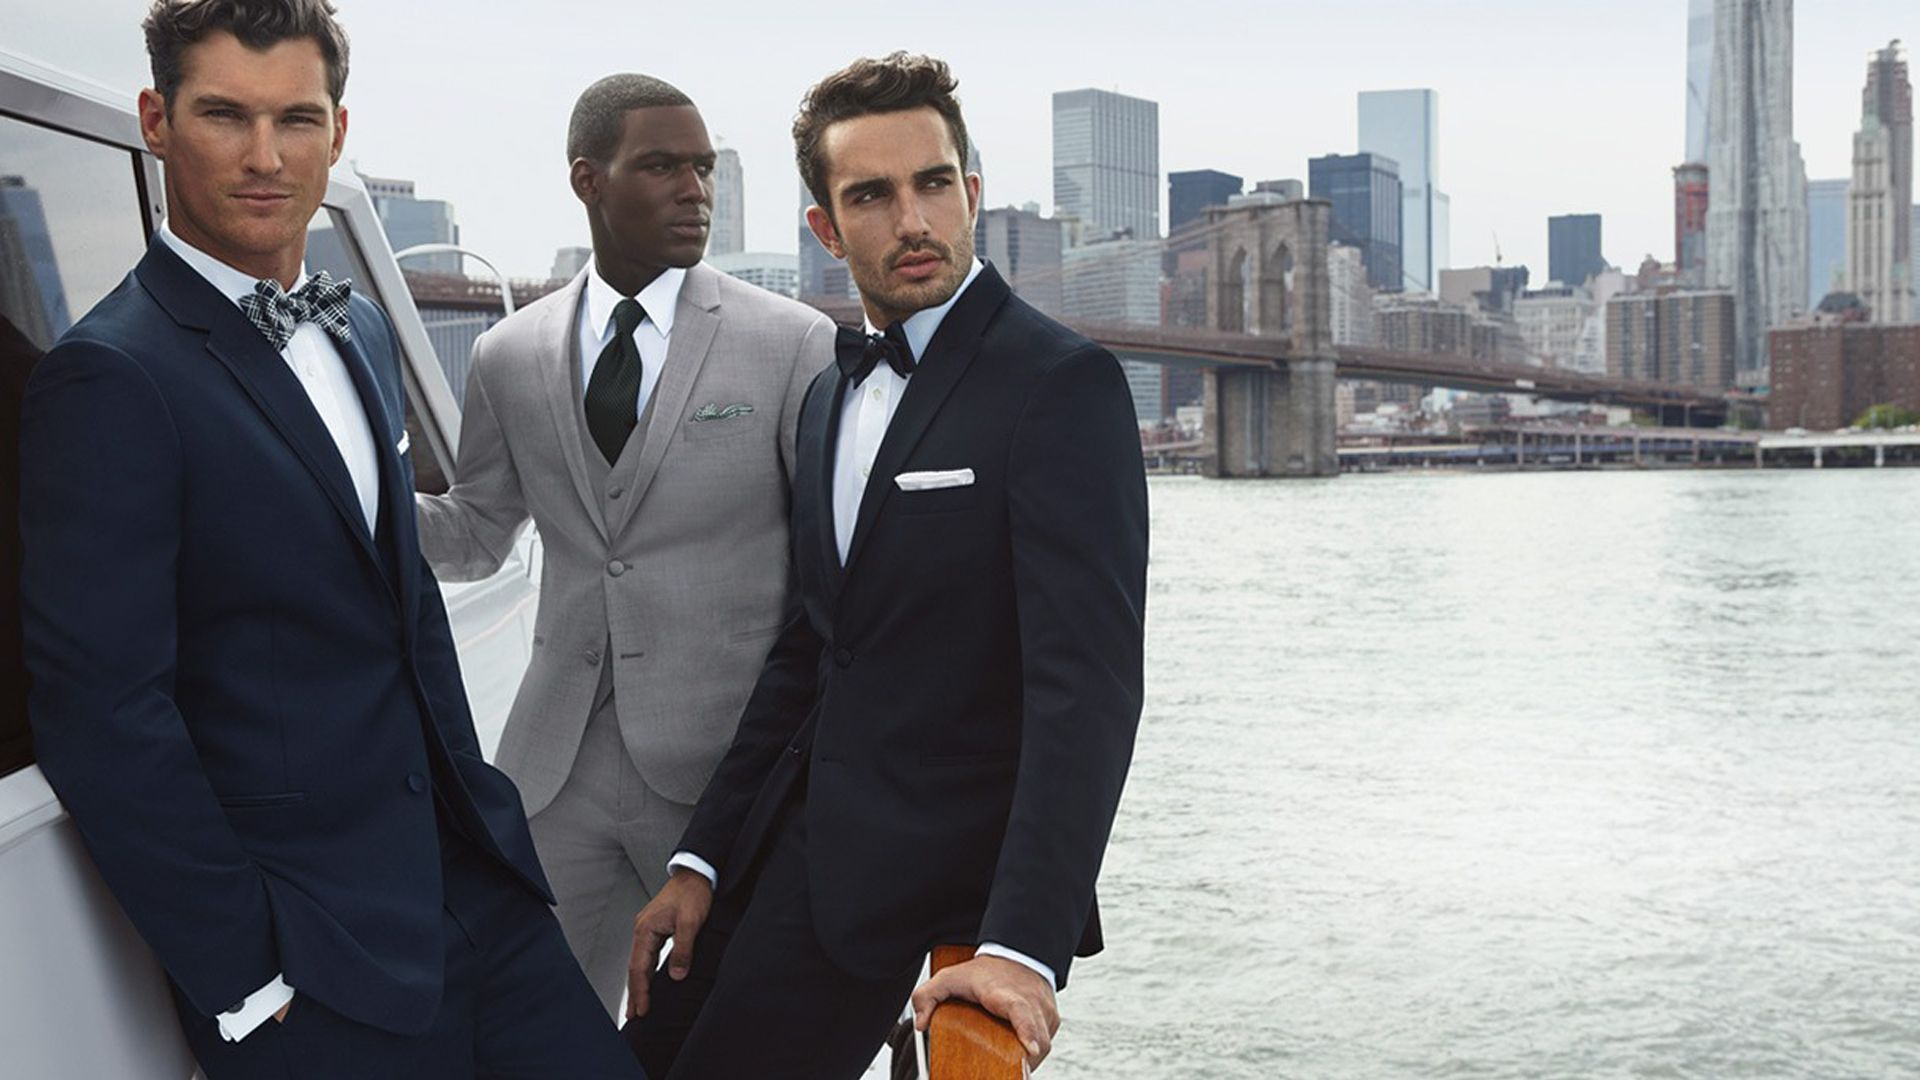 mens wearhouse case study essay Internal analysis case: the men's wearhouse: success in a declining industry then following the document which i upload to write this case study when preparing a written case [].